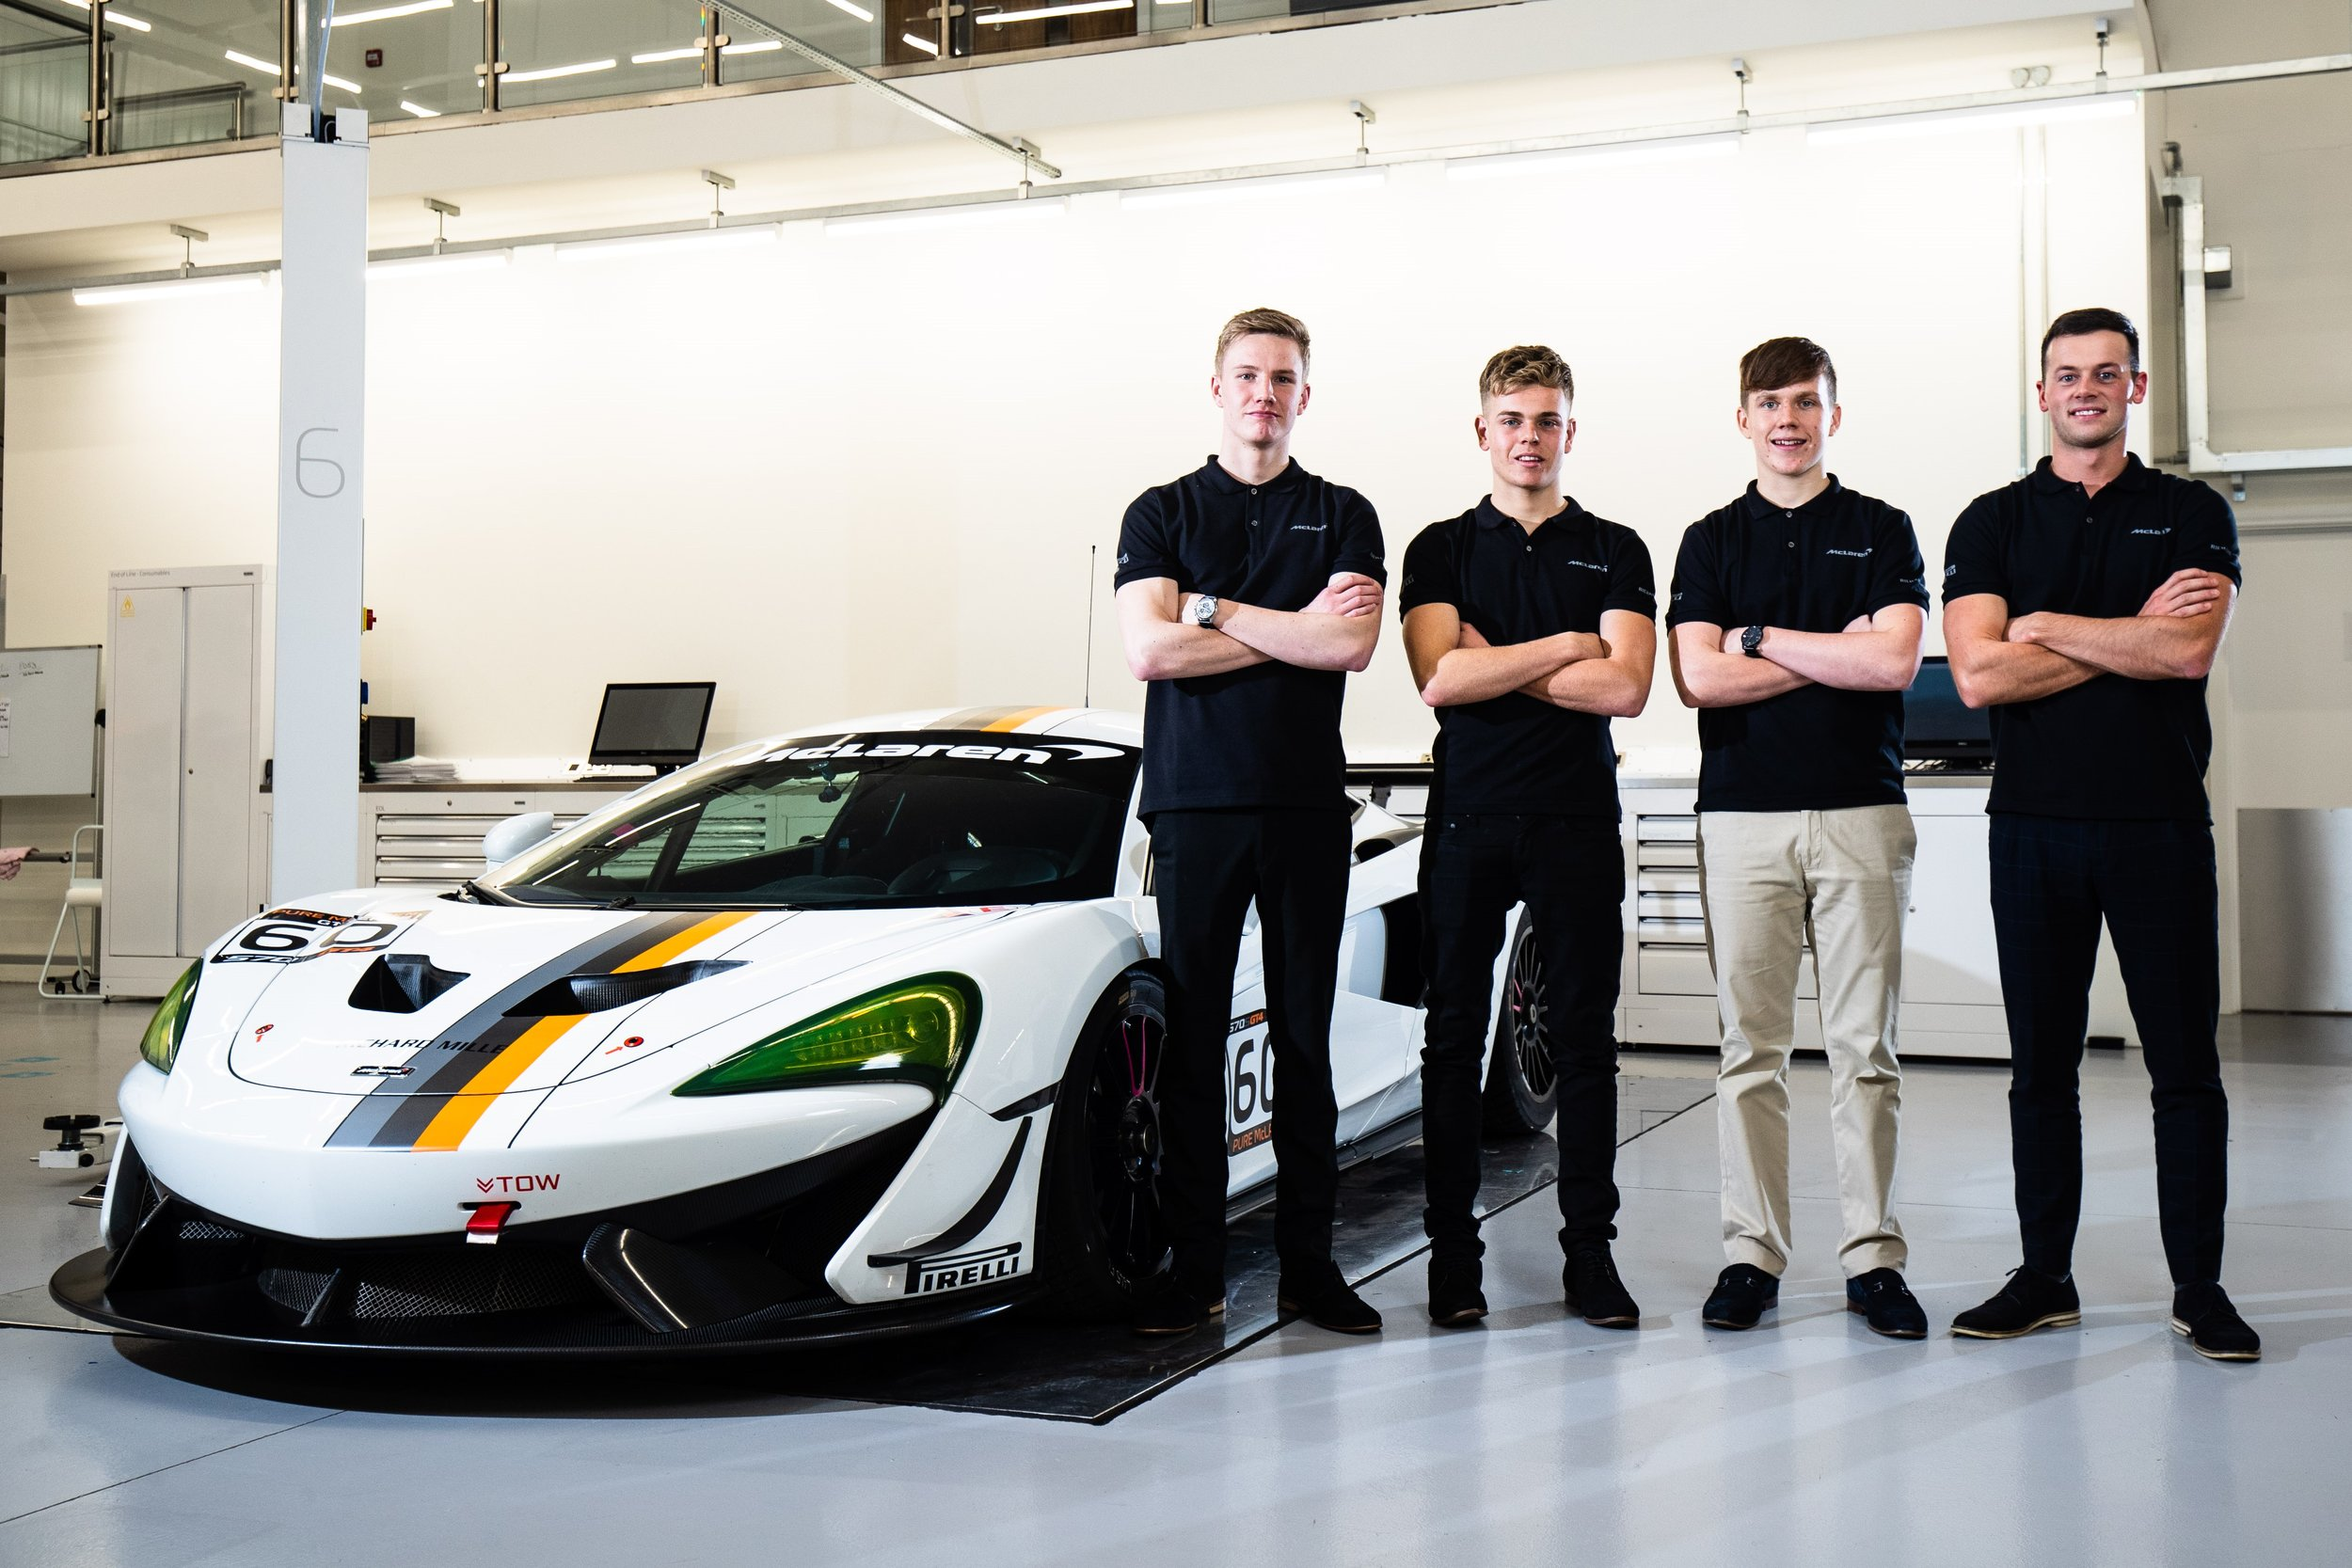 McLarenAutomotive-2019-DriverDevelopmentProgram-0117a.jpg